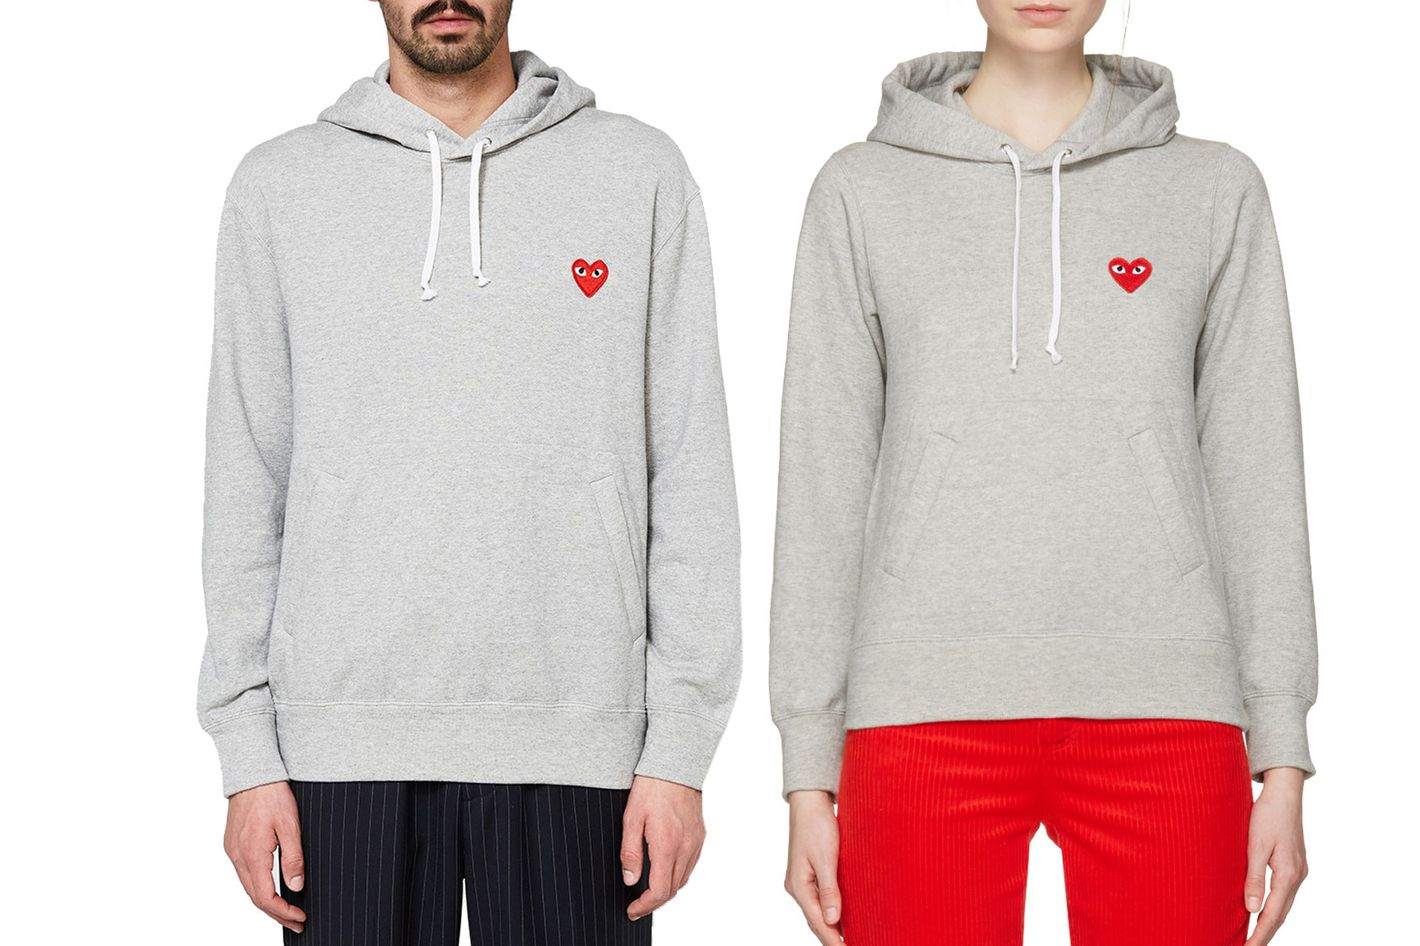 Comme des Garçons Play Hooded Sweatshirt in Grey, Men's